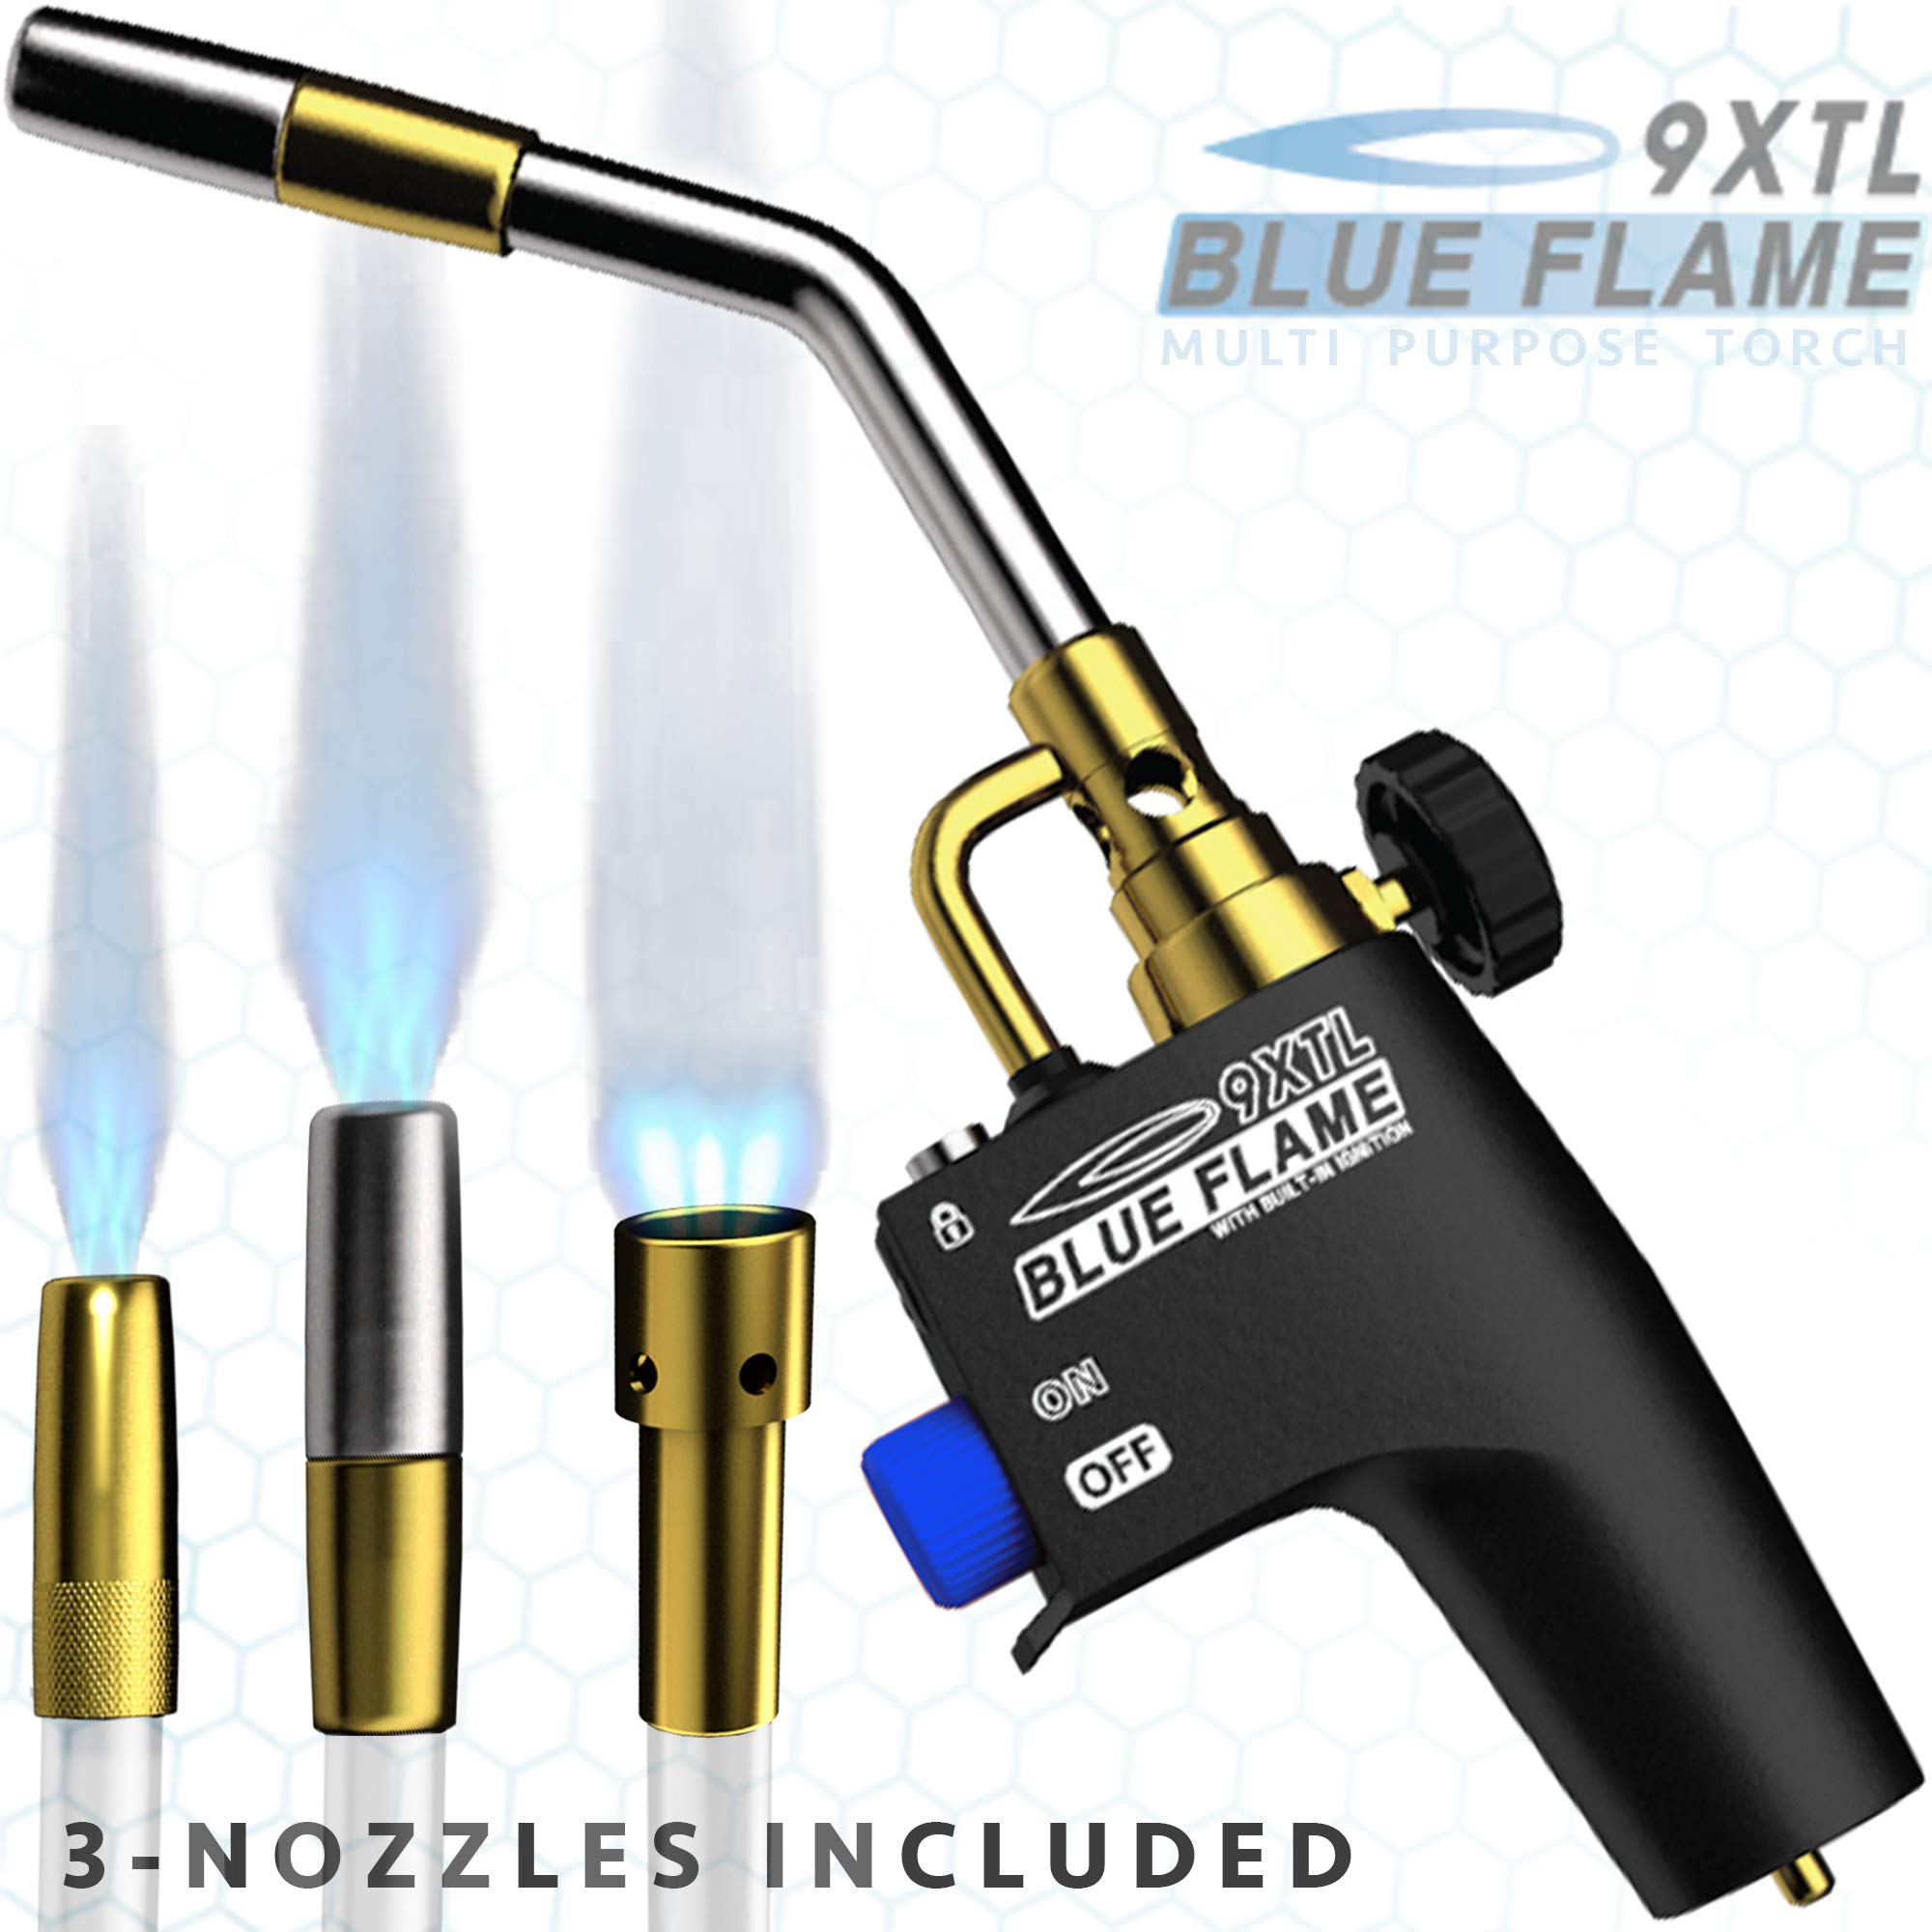 BLUE FLAME 9XTL - Multi Purpose Mapp & Propane Torch | Includes 3 - Nozzles/Tips | Built-In Ignition | Flow Regulator & Flame Lock by FRCTL